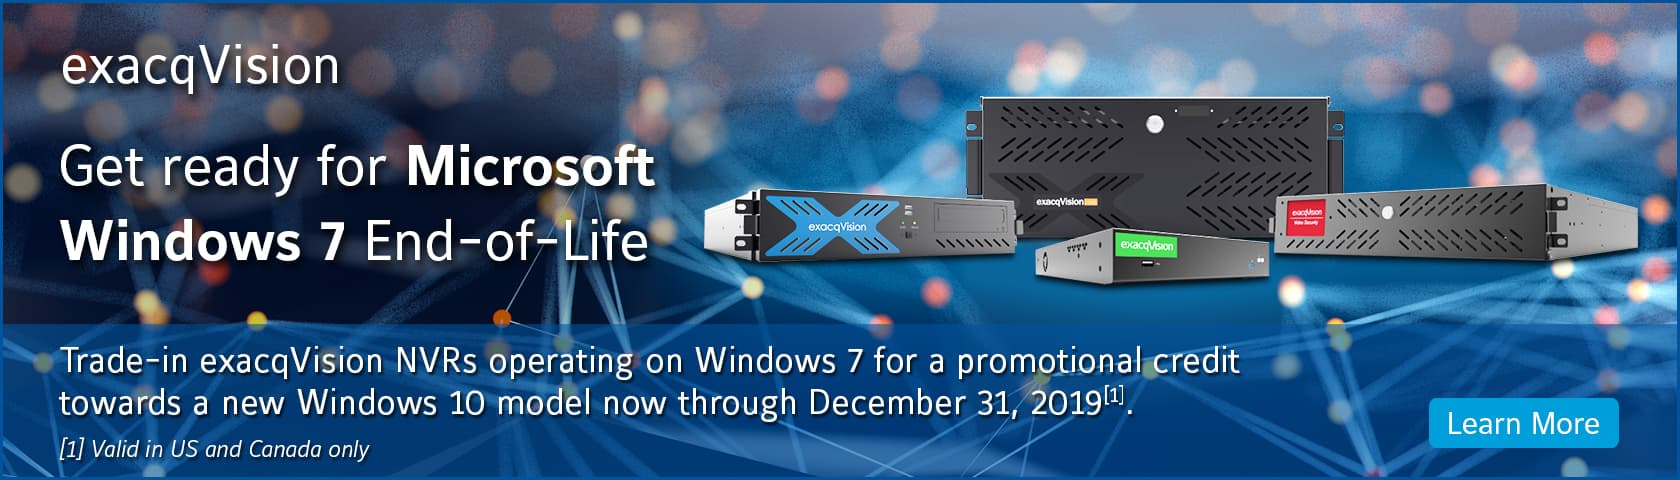 exacqVision Windows 10 Promotion